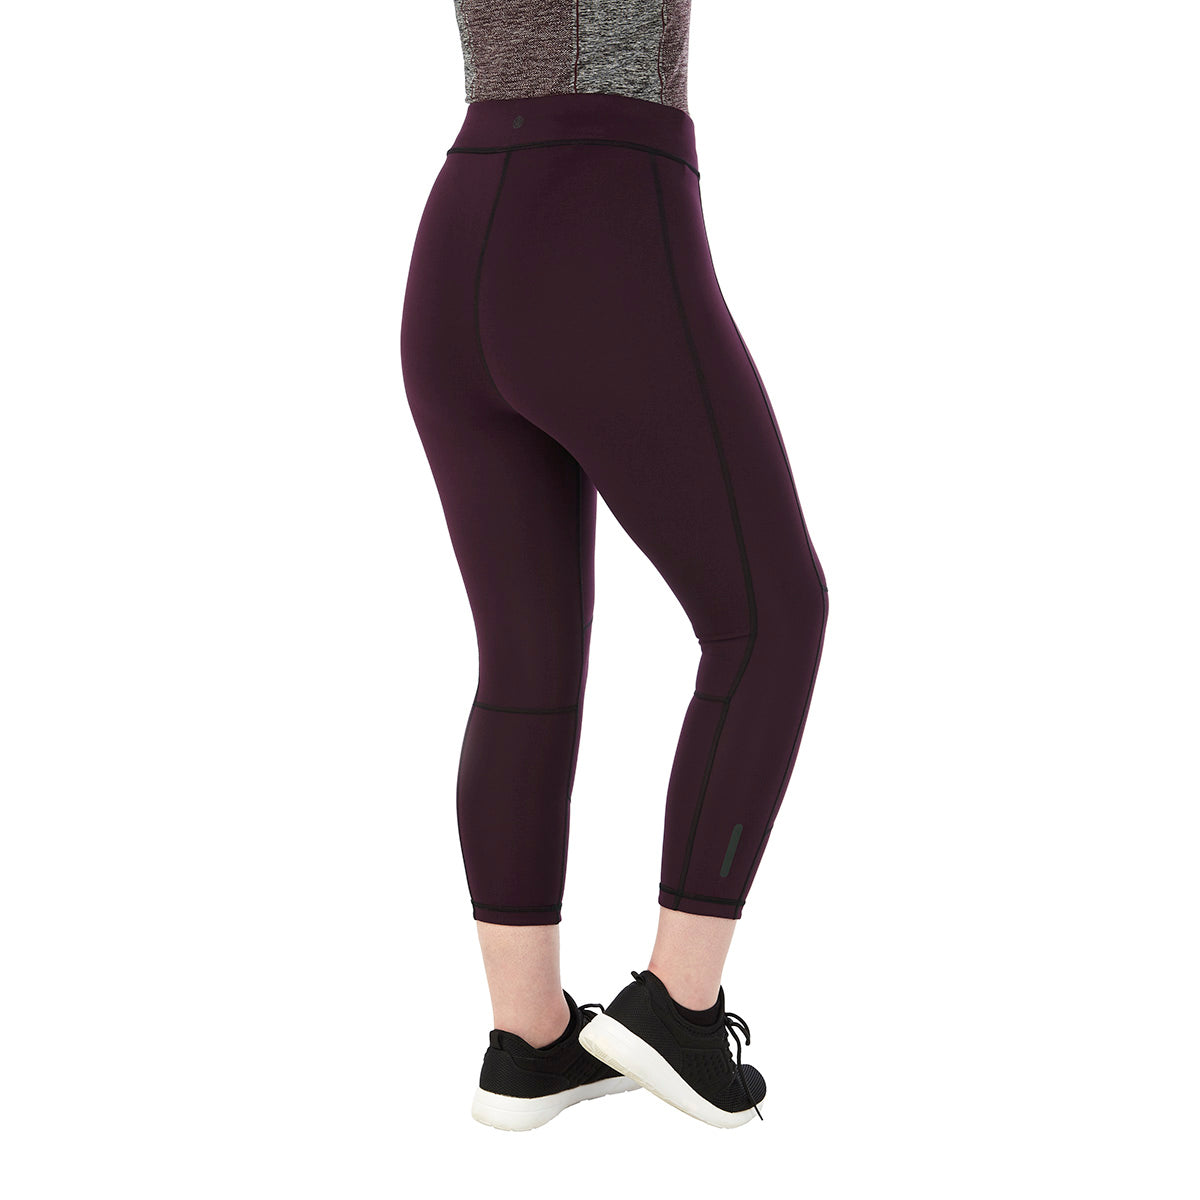 Raid Womens Reversible Performance Leggings - Deep Port/Black image 4